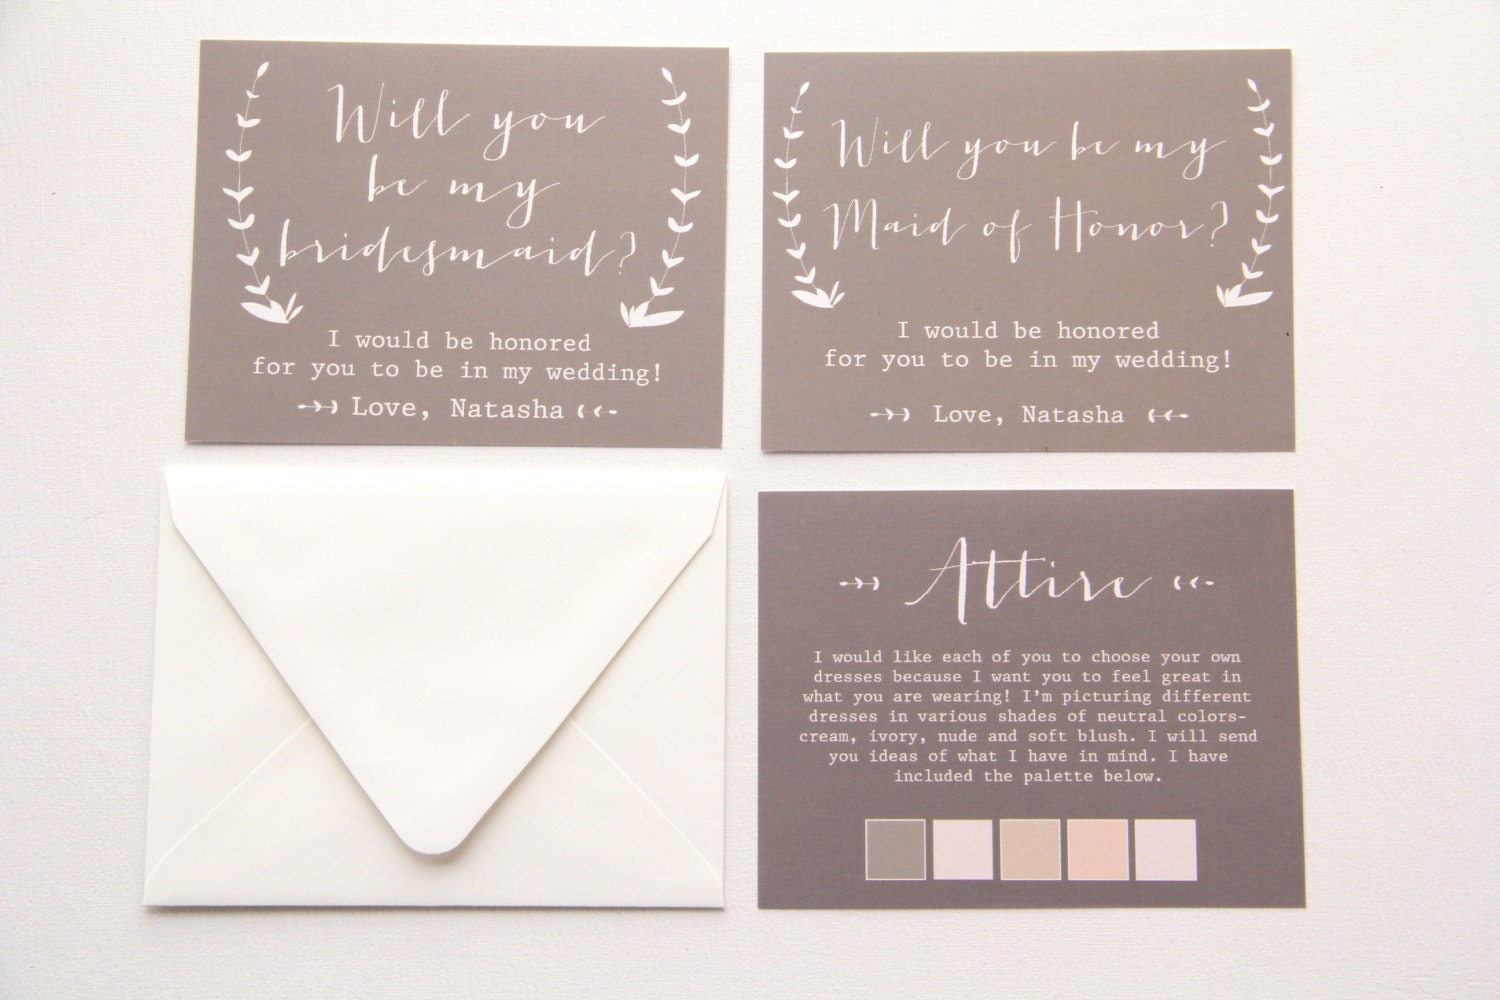 Honor Or Honour On Wedding Invitations: Will You Be My Bridesmaid/ Maid Of Honor/ Matron Of Honor